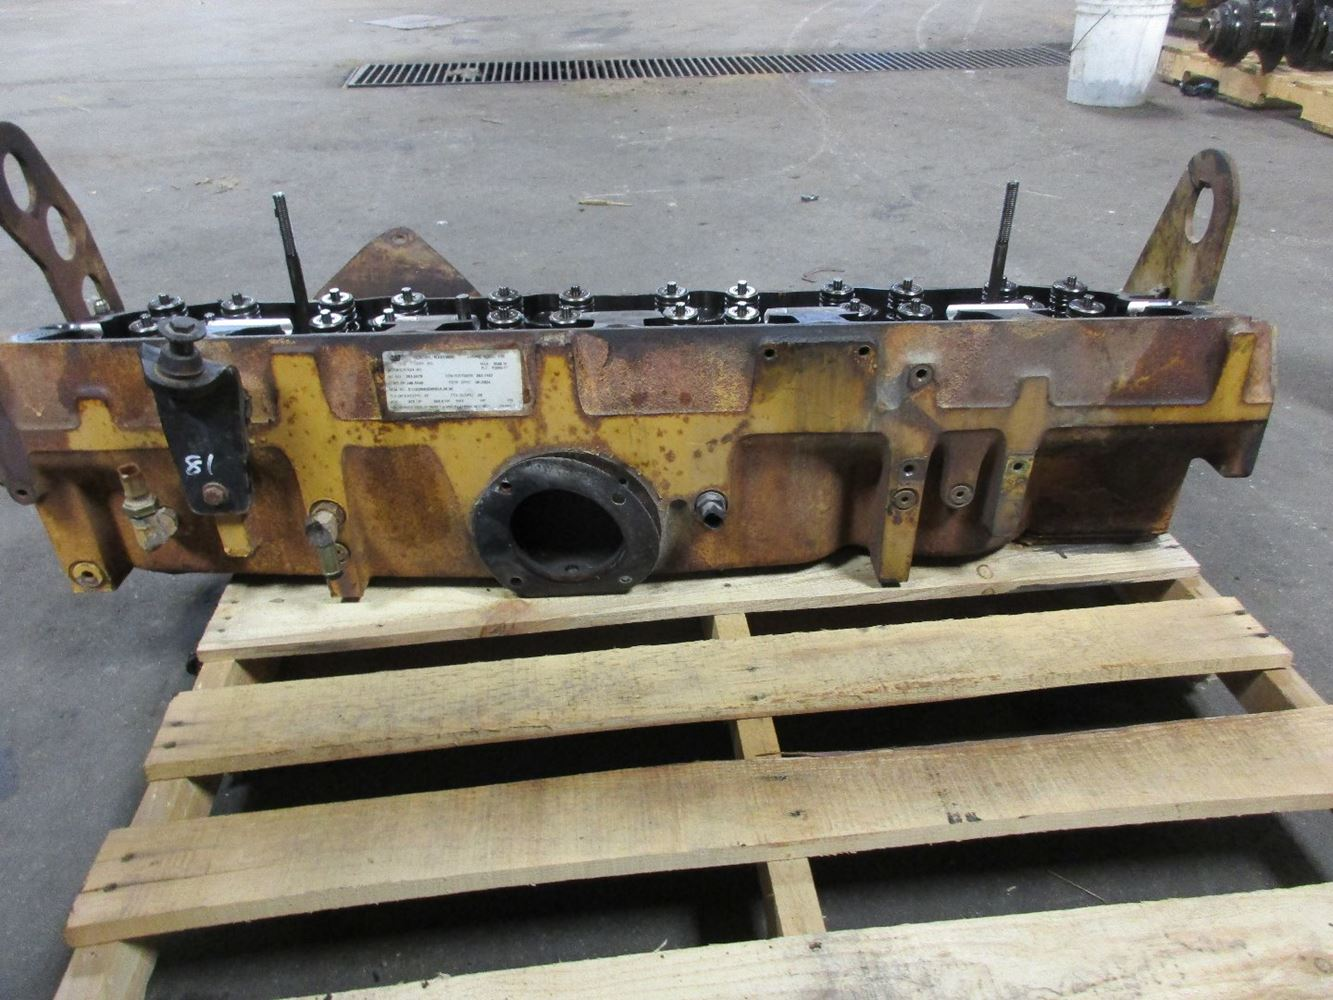 2007 Caterpillar C15 (Stock #21402180)